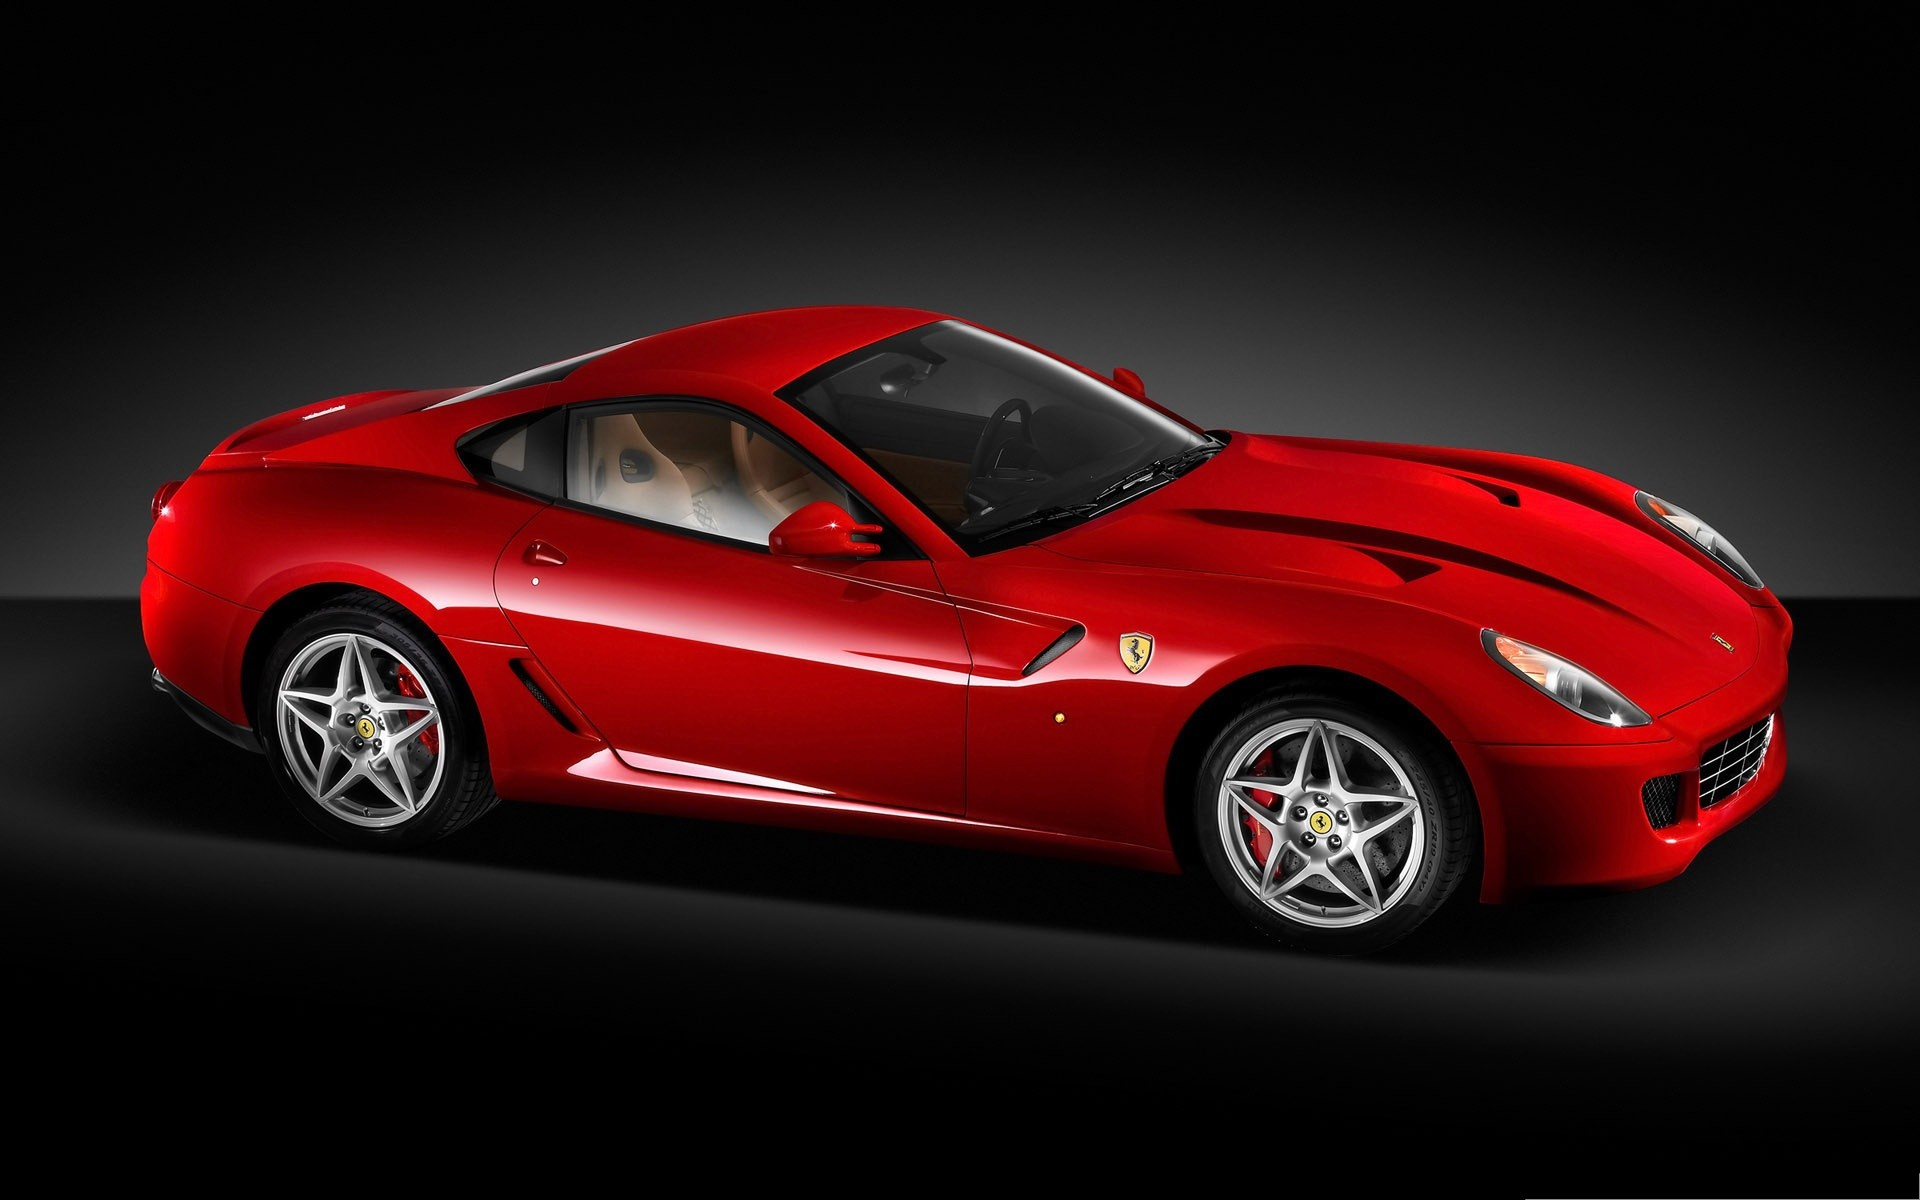 1920x1200 Ferrari Black and Red Car Best Cars Wallpaper and Review Cars